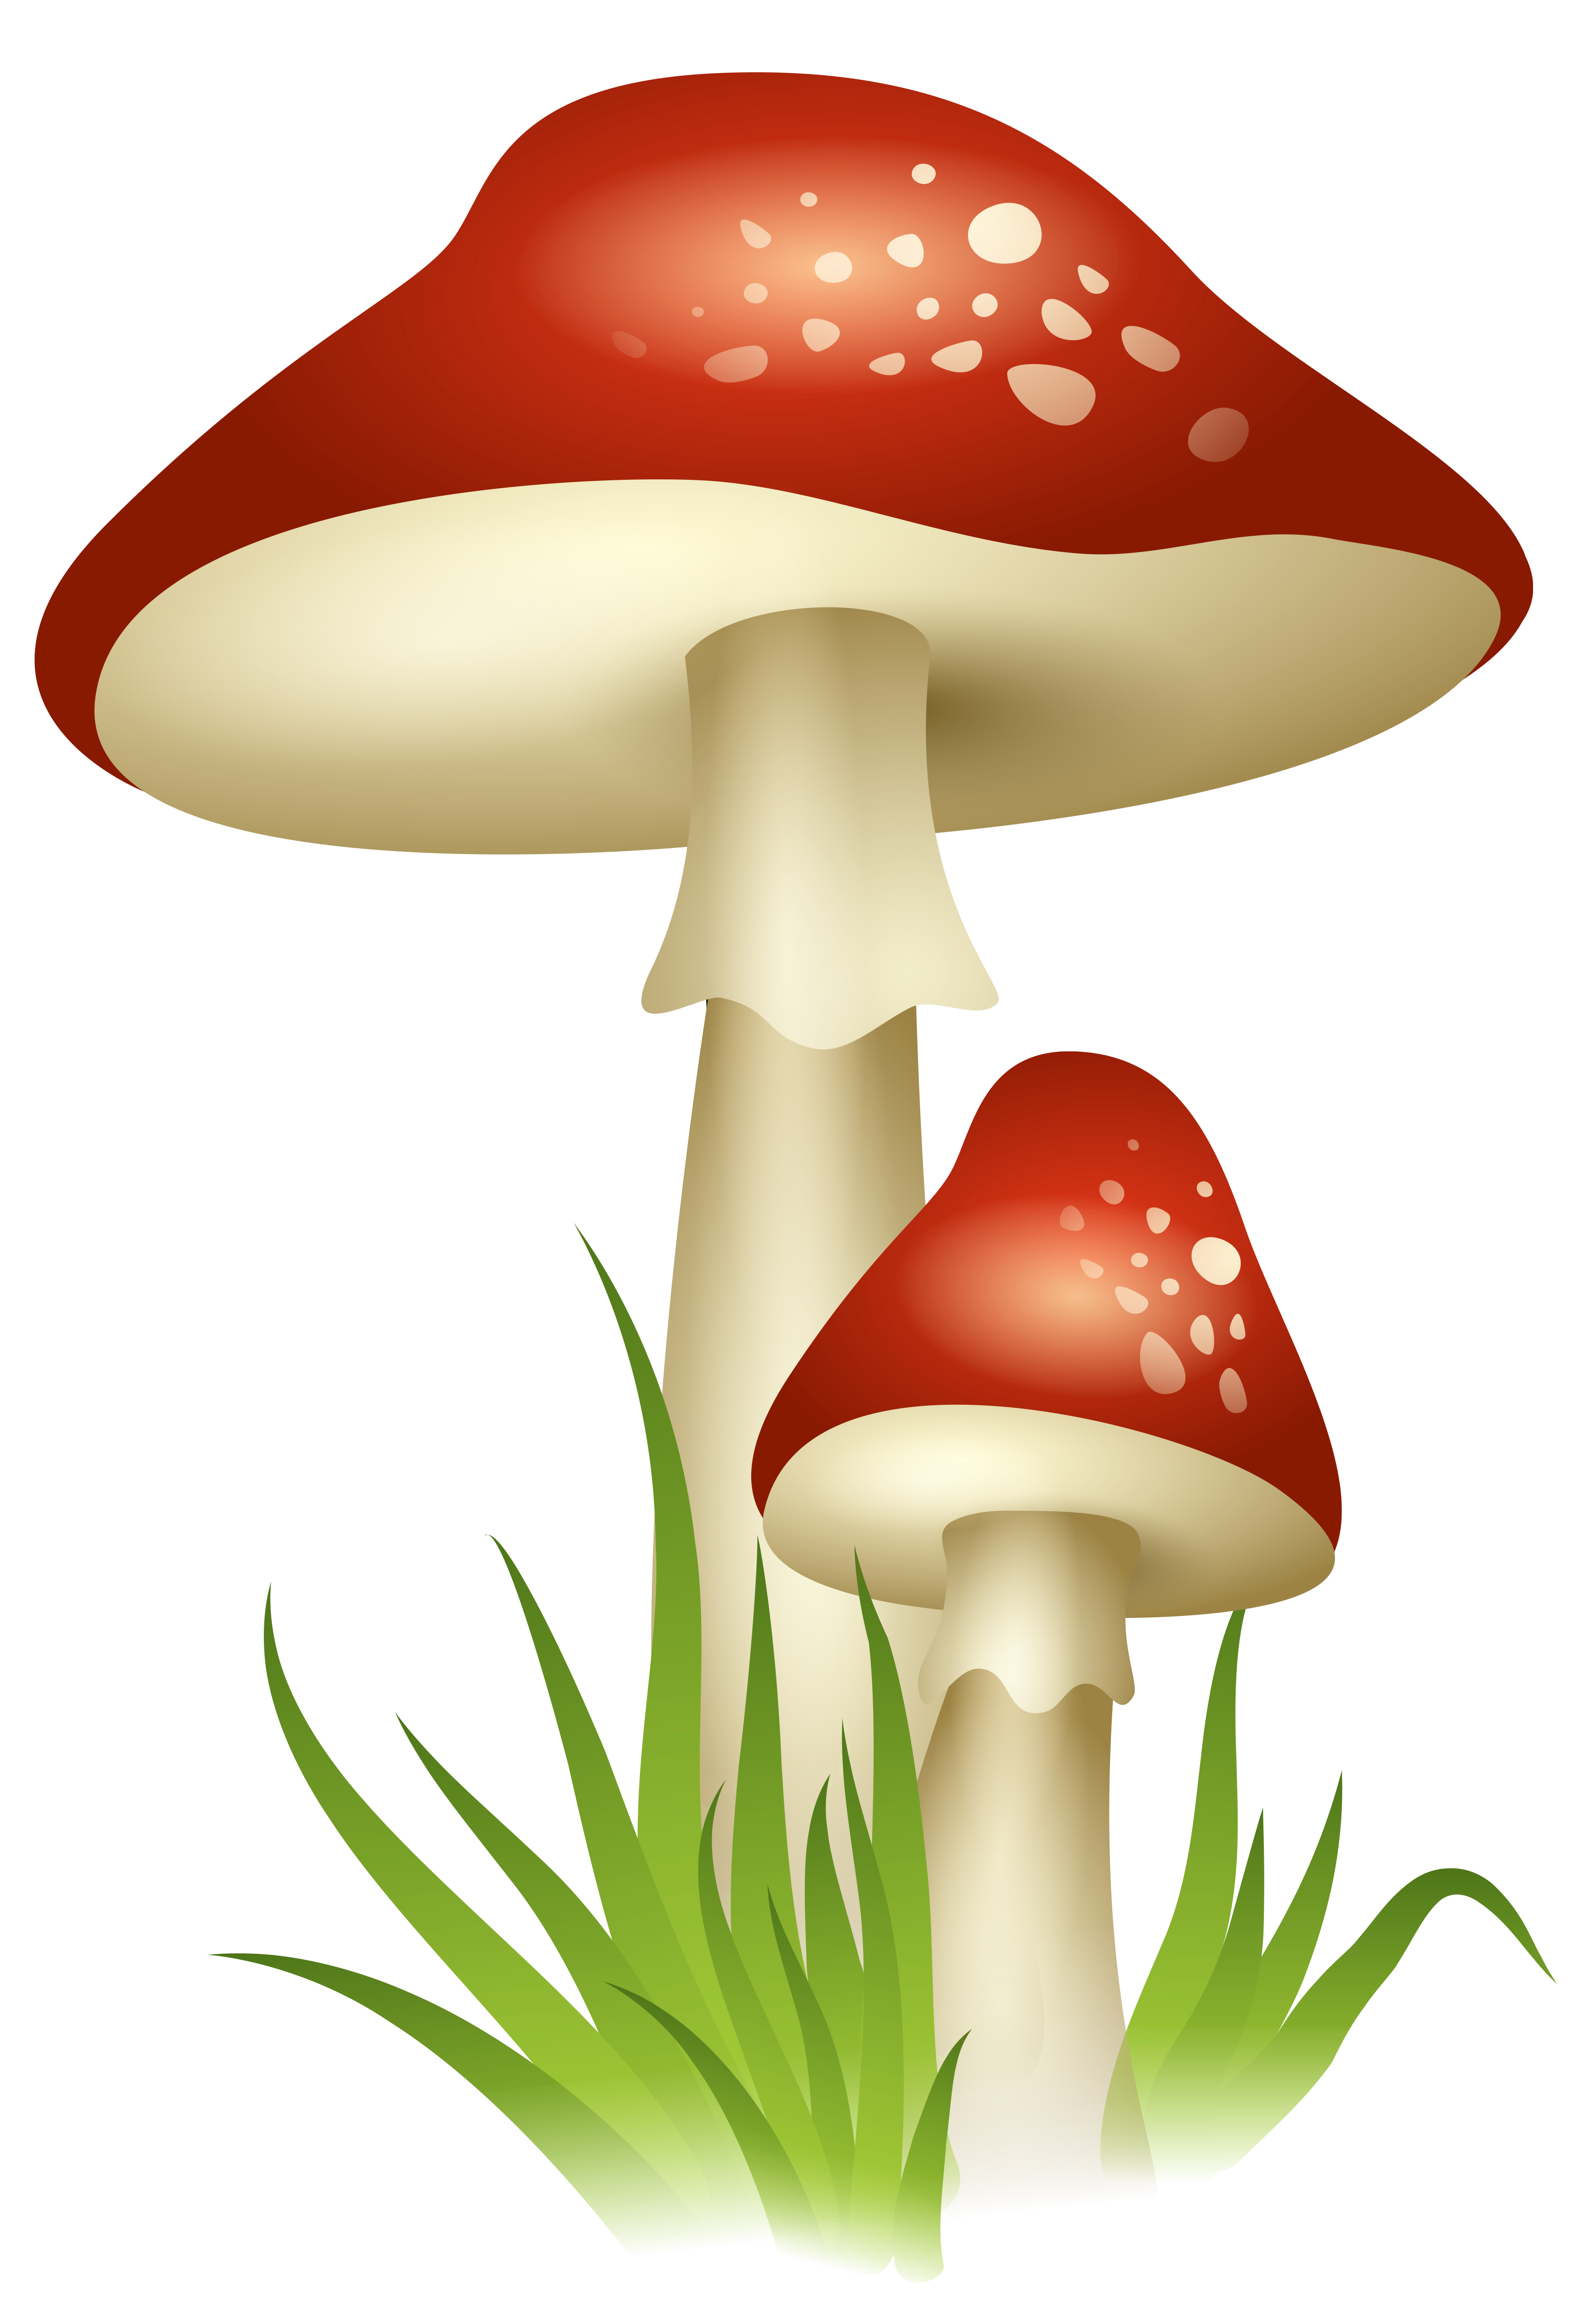 Troll house clipart clip art transparent library Mushrooms Transparent Png Picture Free Download | Free pictures ... clip art transparent library